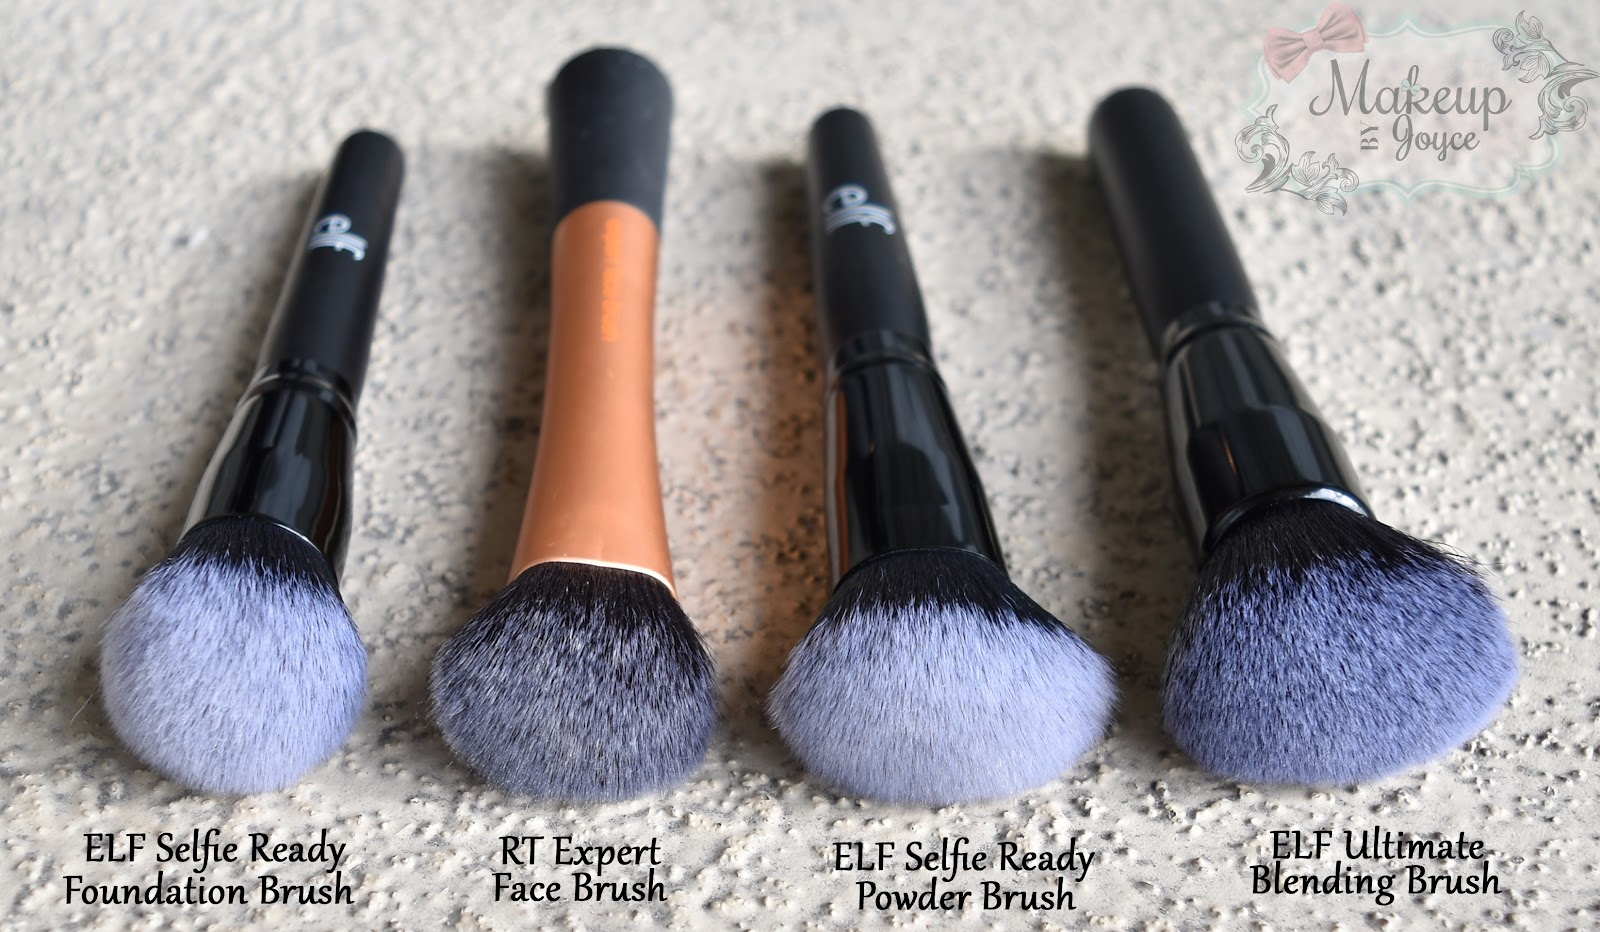 Flawless Face Brush by e.l.f. #7